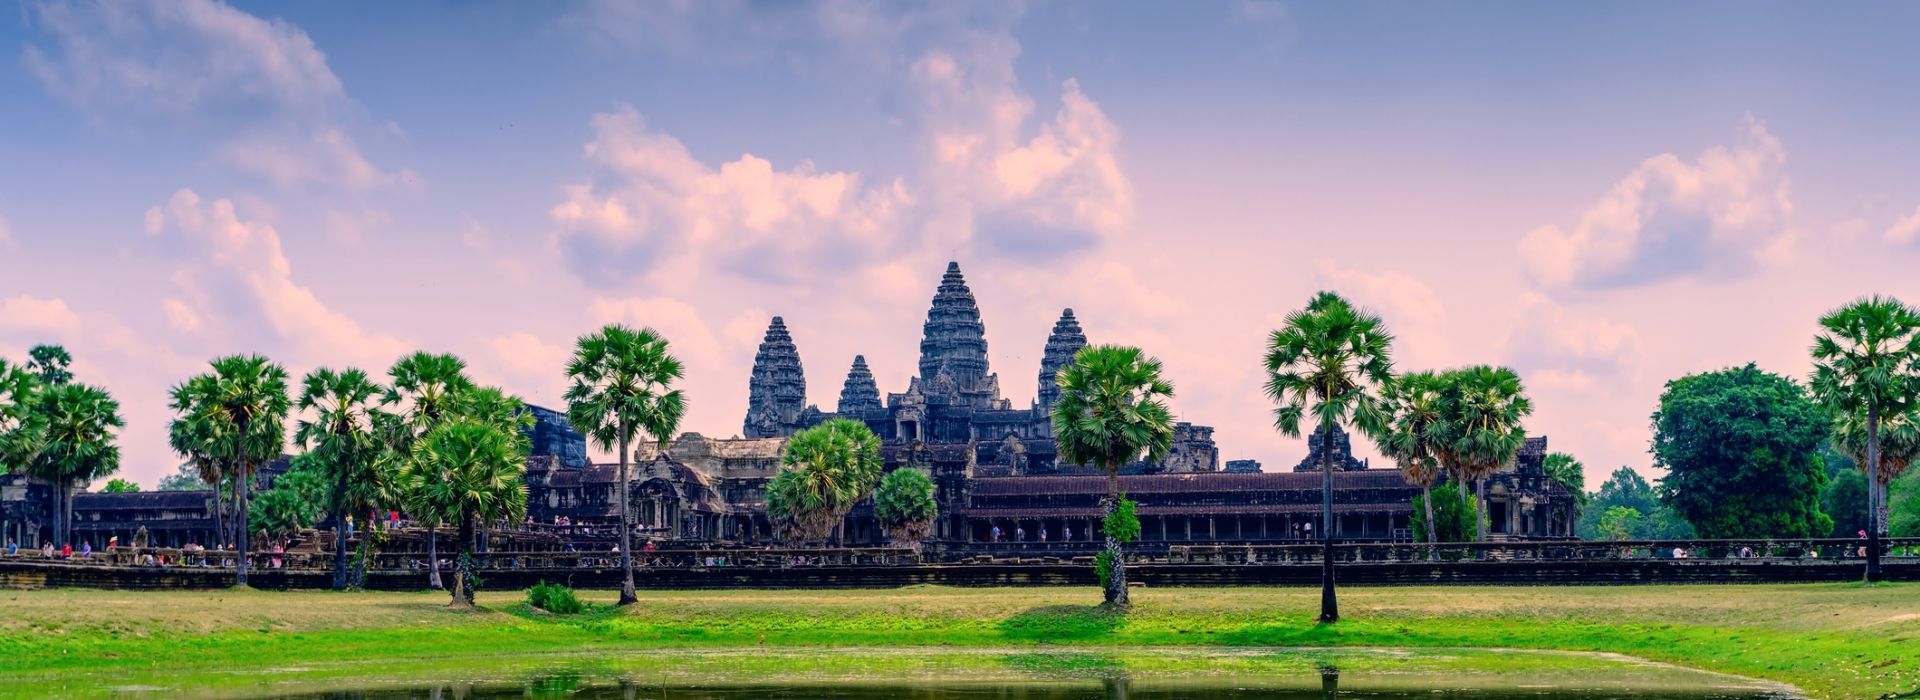 Cultural, religious and historic sites Tours in Sihanoukville